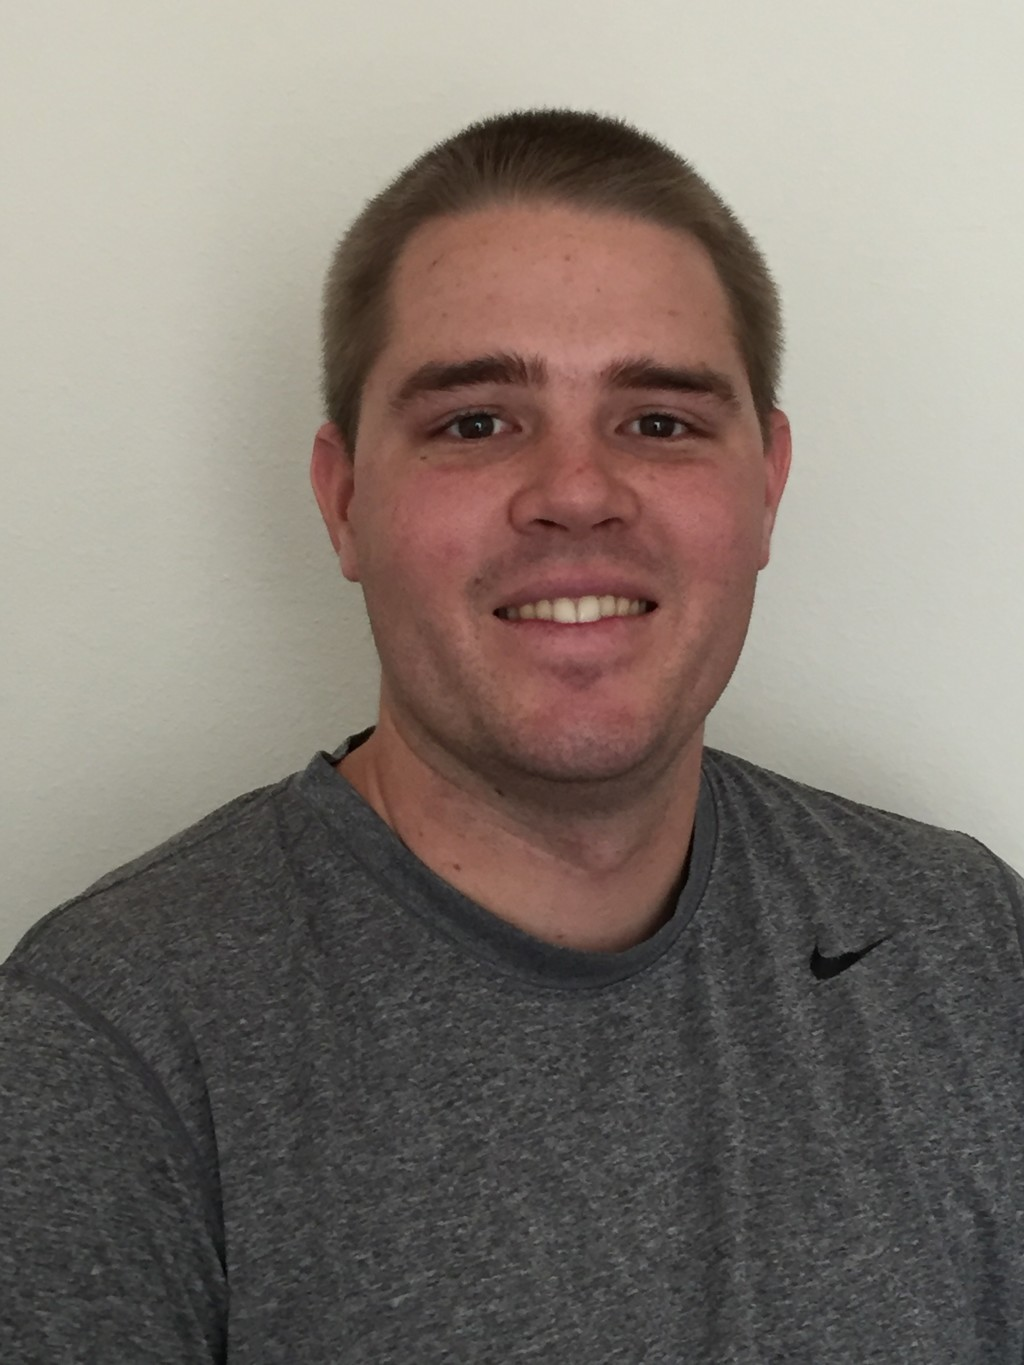 Personal Trainer Houston, Texas - Austin Carden